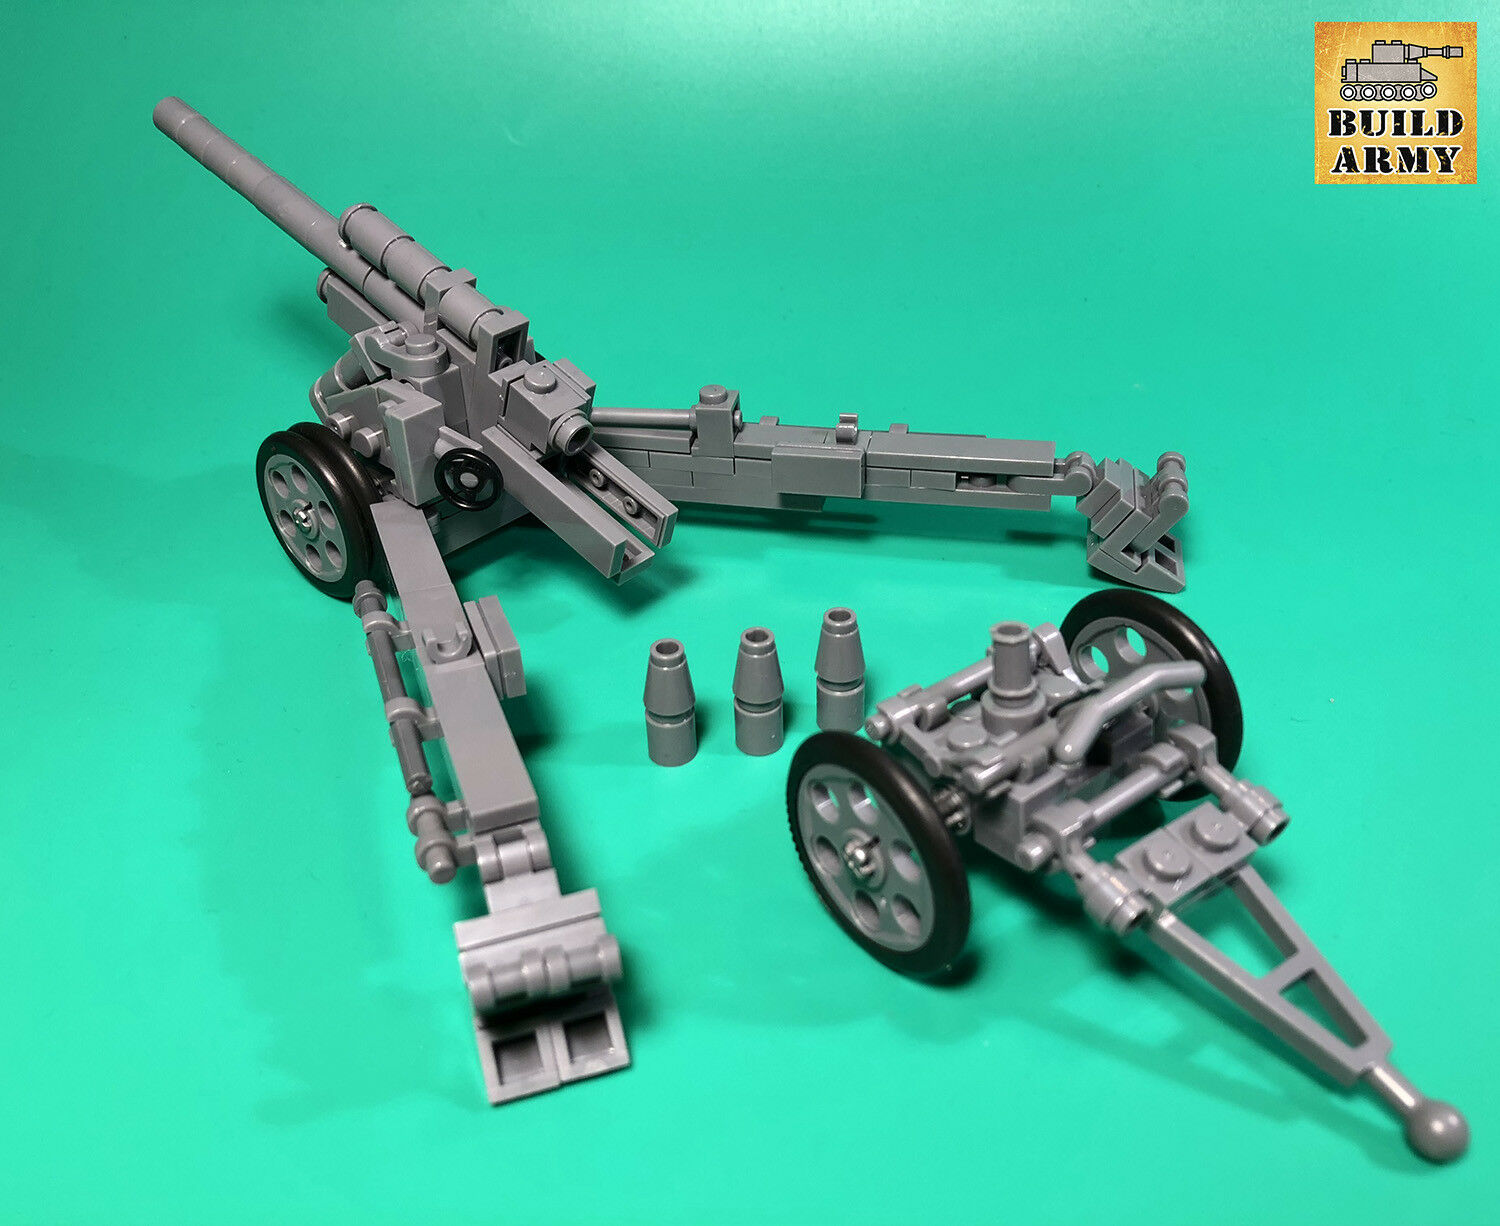 WW2 ALLEMAND AGNM Full Brique Set + instruction par par par buildarmy ® + Gratuit Lego Panel 4e04ce